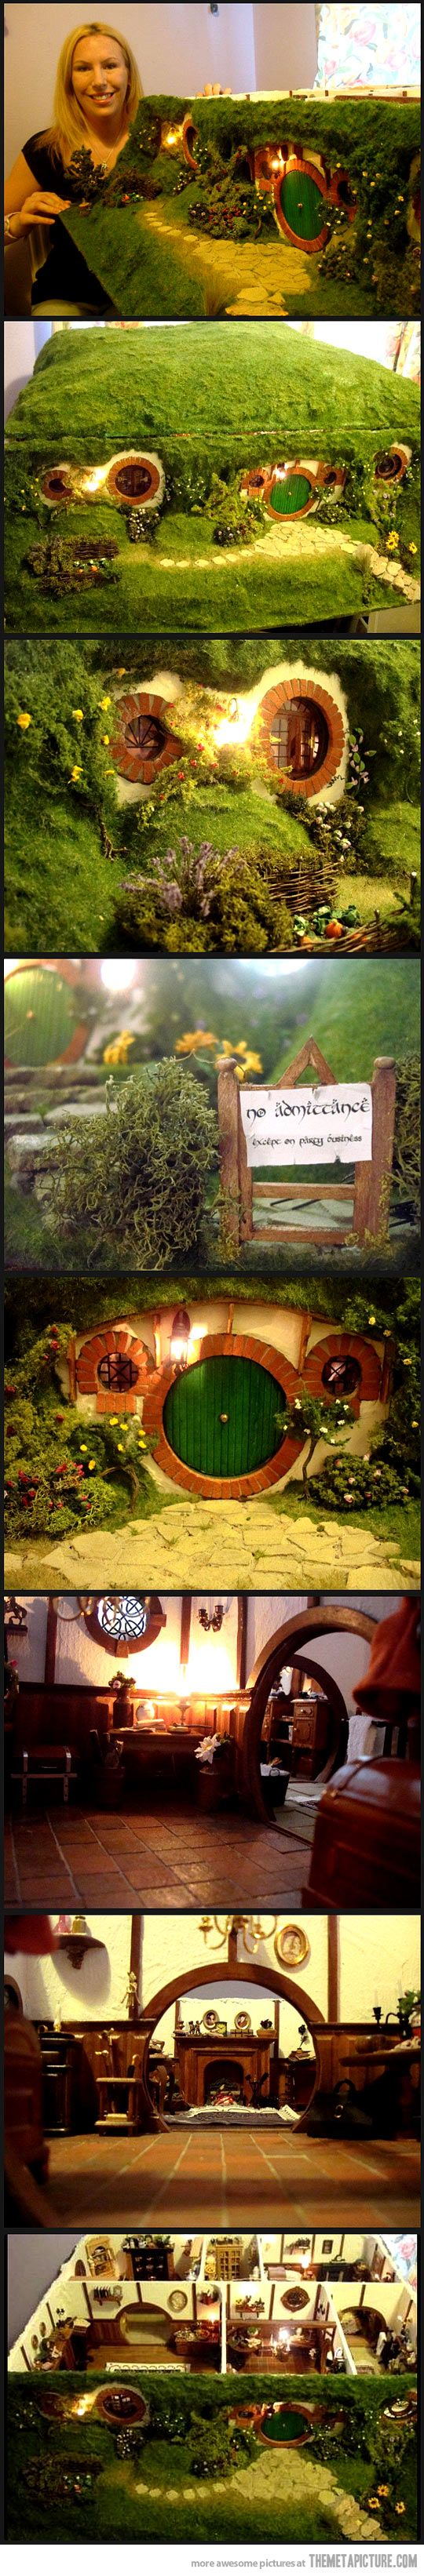 cool-doll-house-Hobbits-Lord-Rings